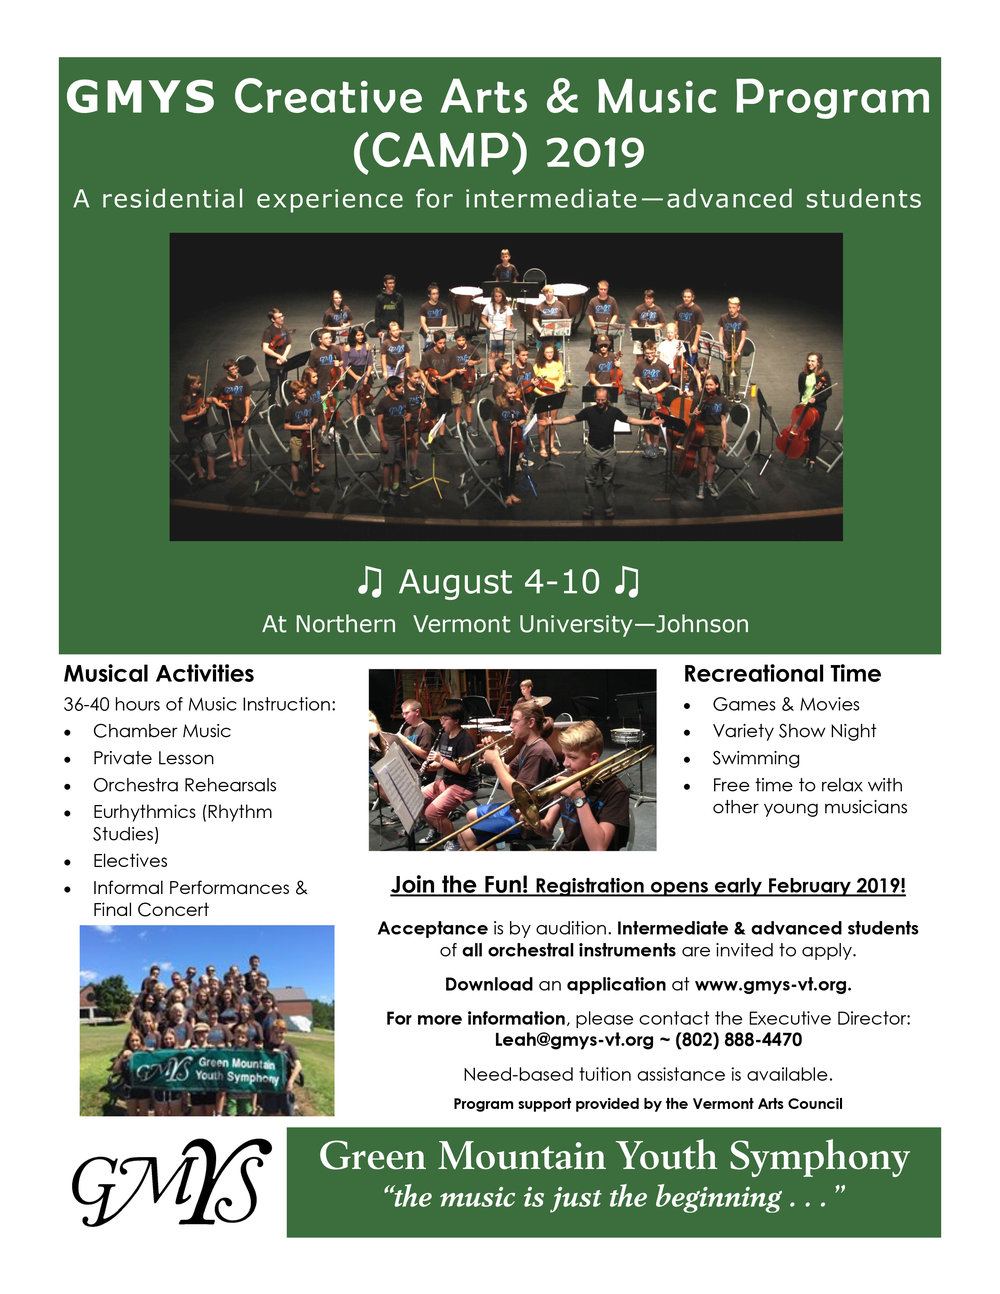 2019 GMYS CAMP poster.jpg